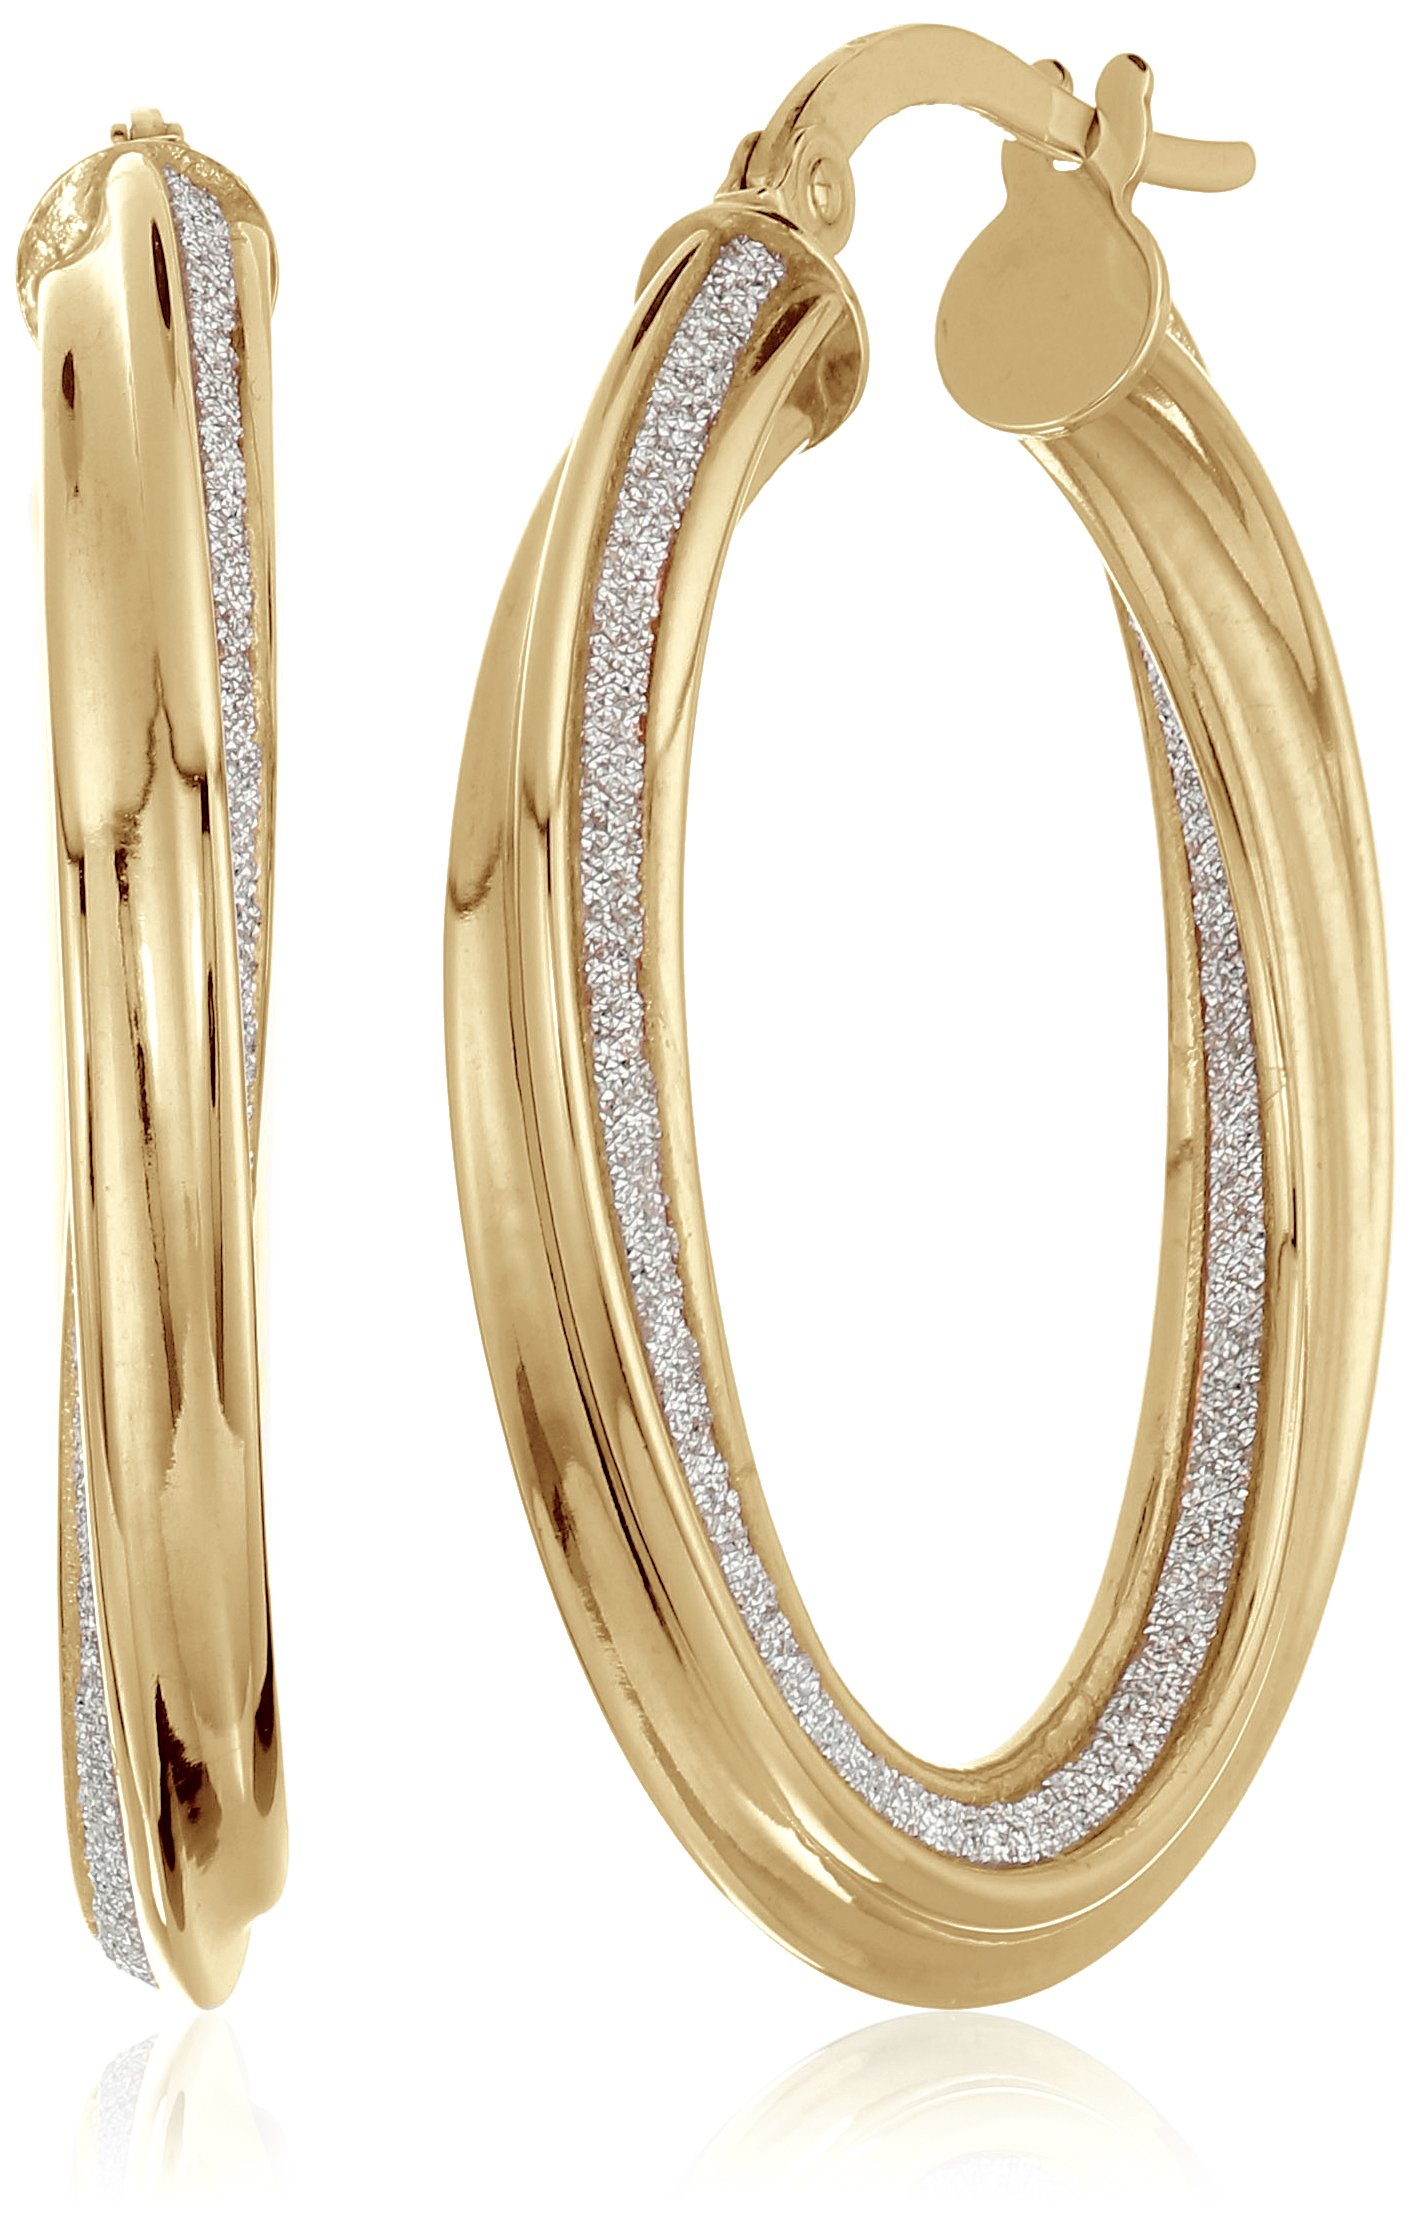 14k Yellow Gold Italian 20 mm Twisted Tube Hoop Earrings with Pave Style Glitter Hoop Earrings by Amazon Collection